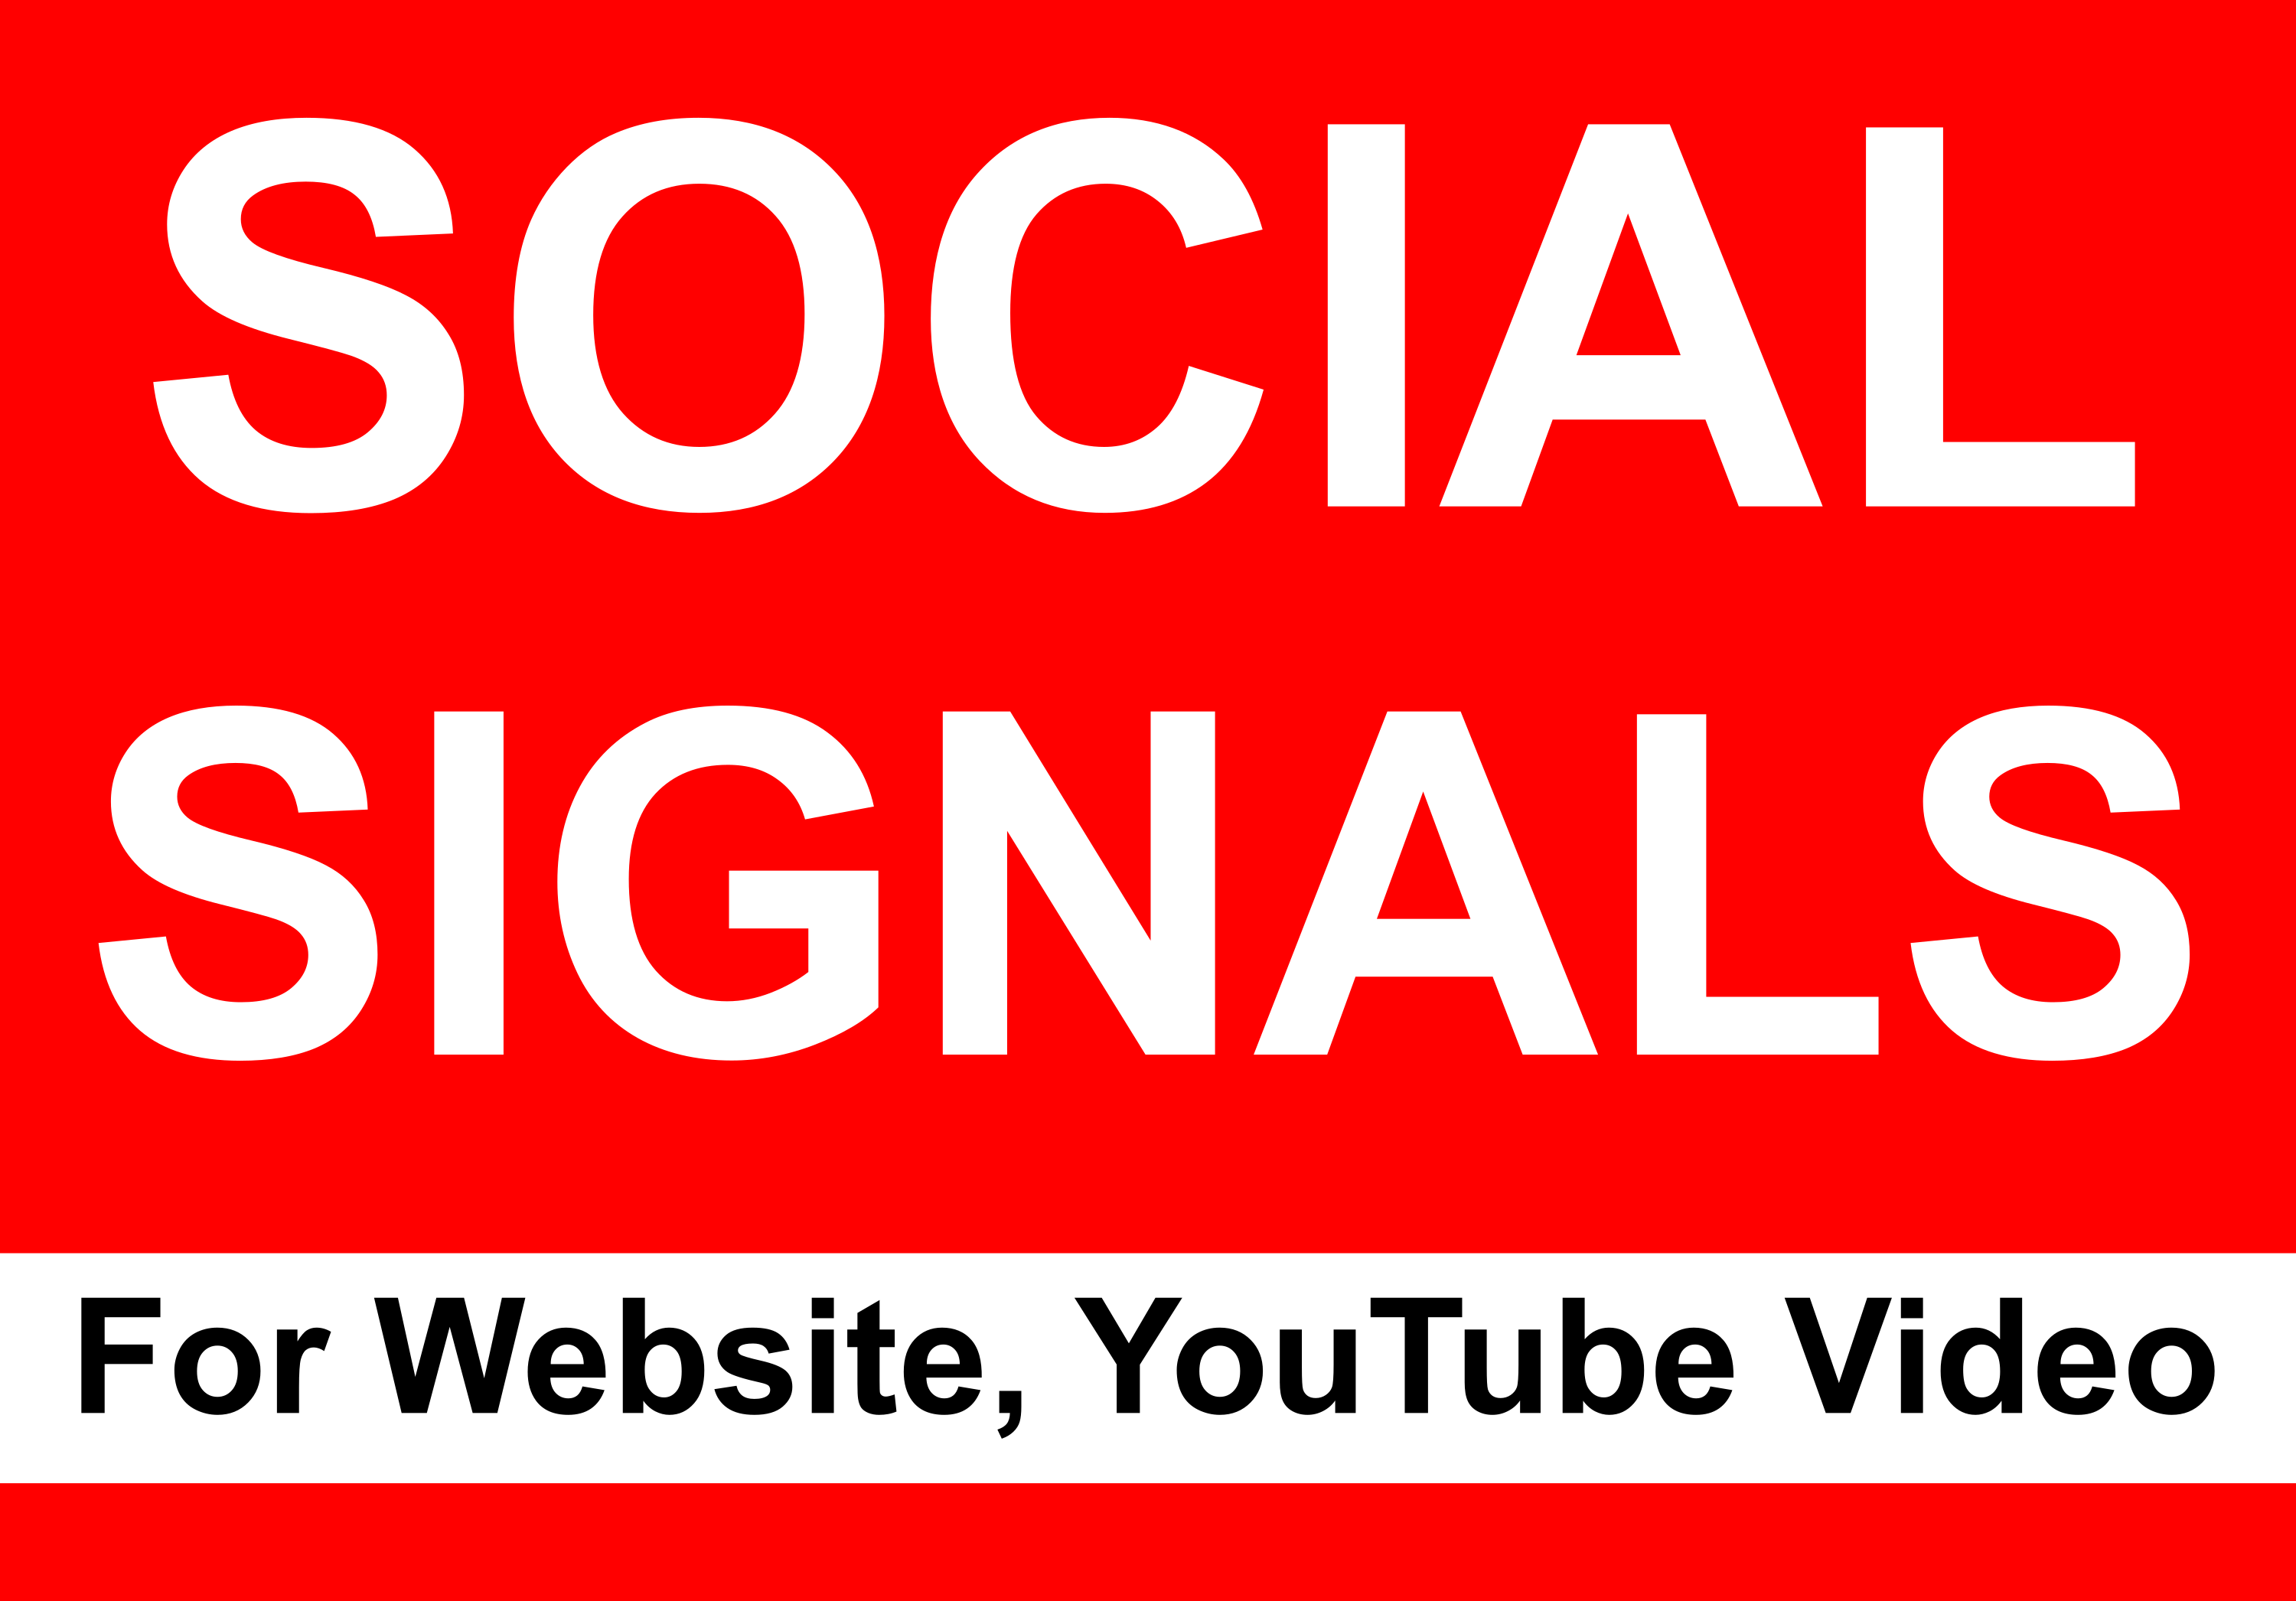 10000 social signals boost your website or Youtube video